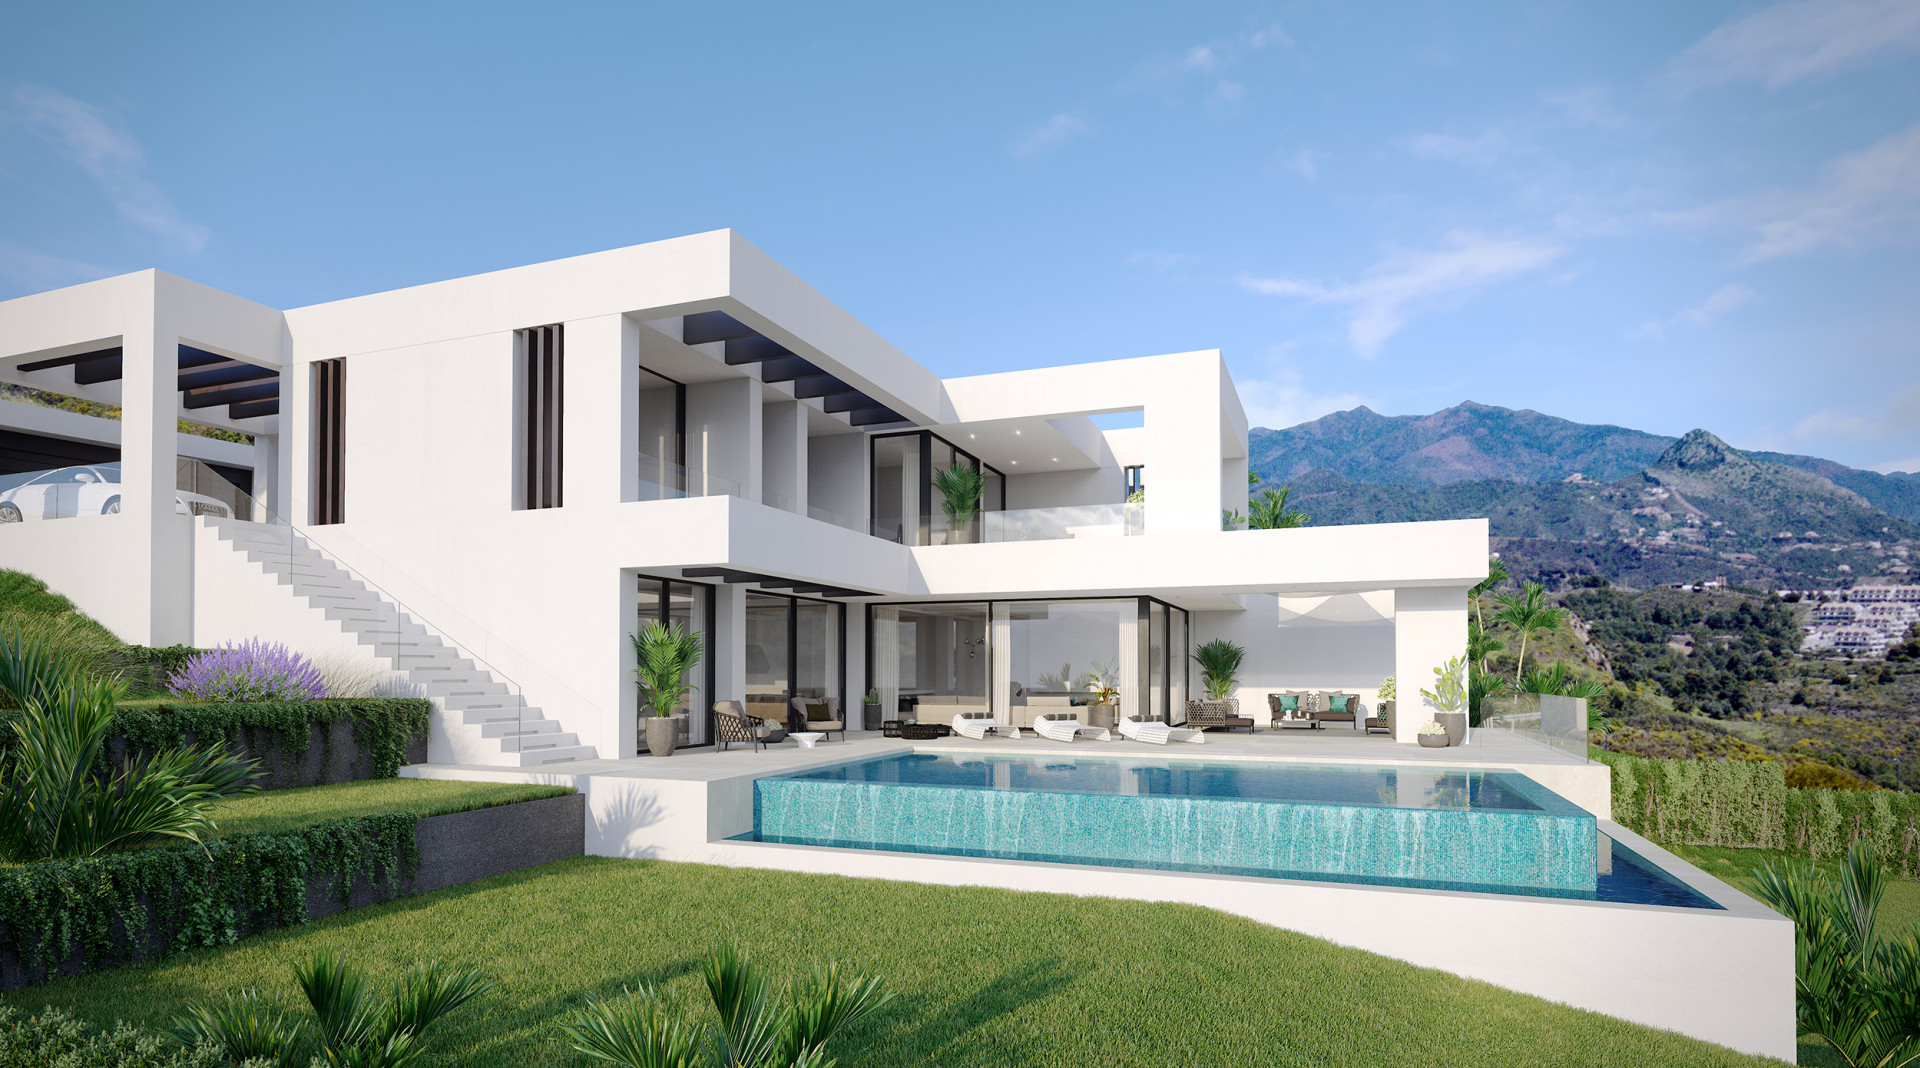 The View Luxury Villas – NEWVD6279